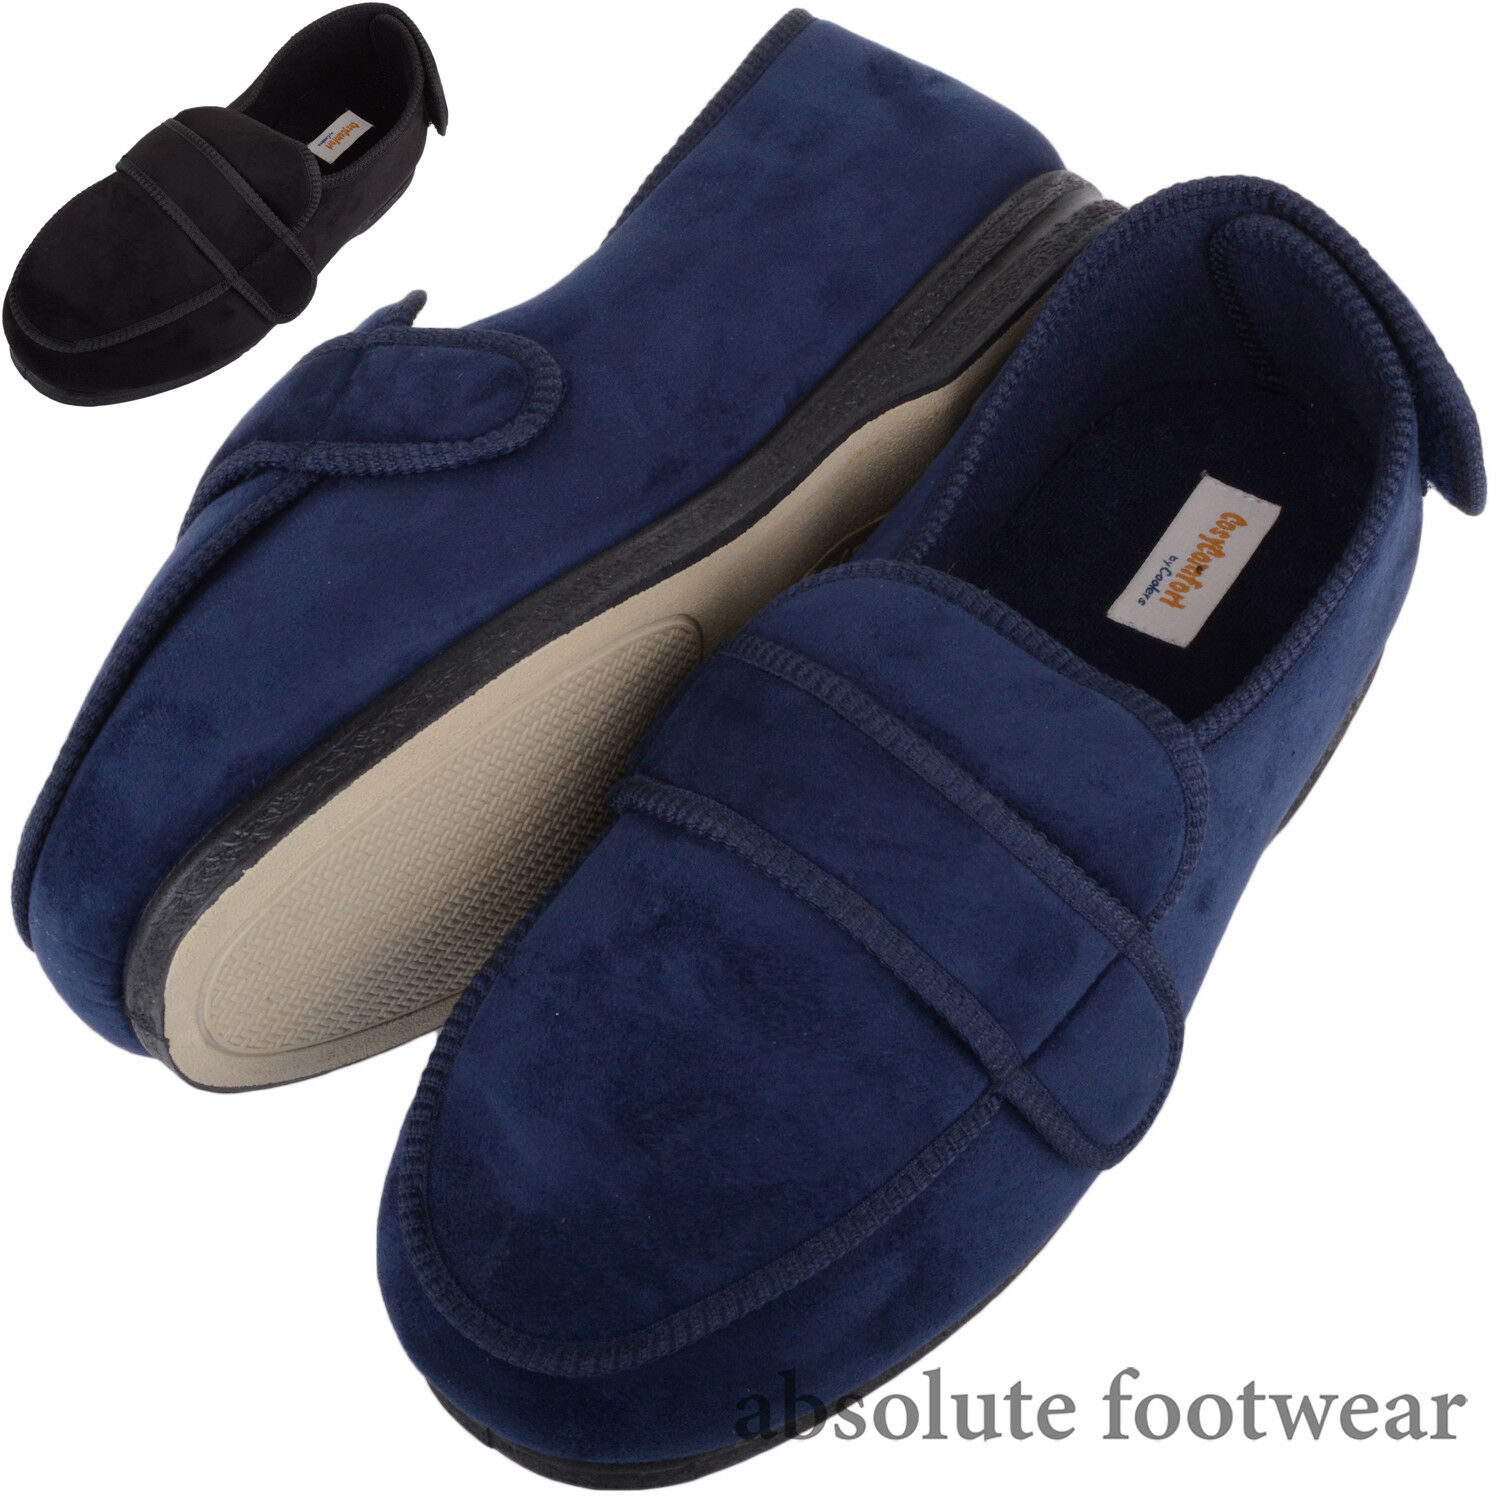 Mr/Ms Mens / Gents Slippers Microsuede EEE Wide Fitting Slippers Gents / Boots with Ripper Fastening Customer first Skilled manufacturing International big name NN1189 d57e87